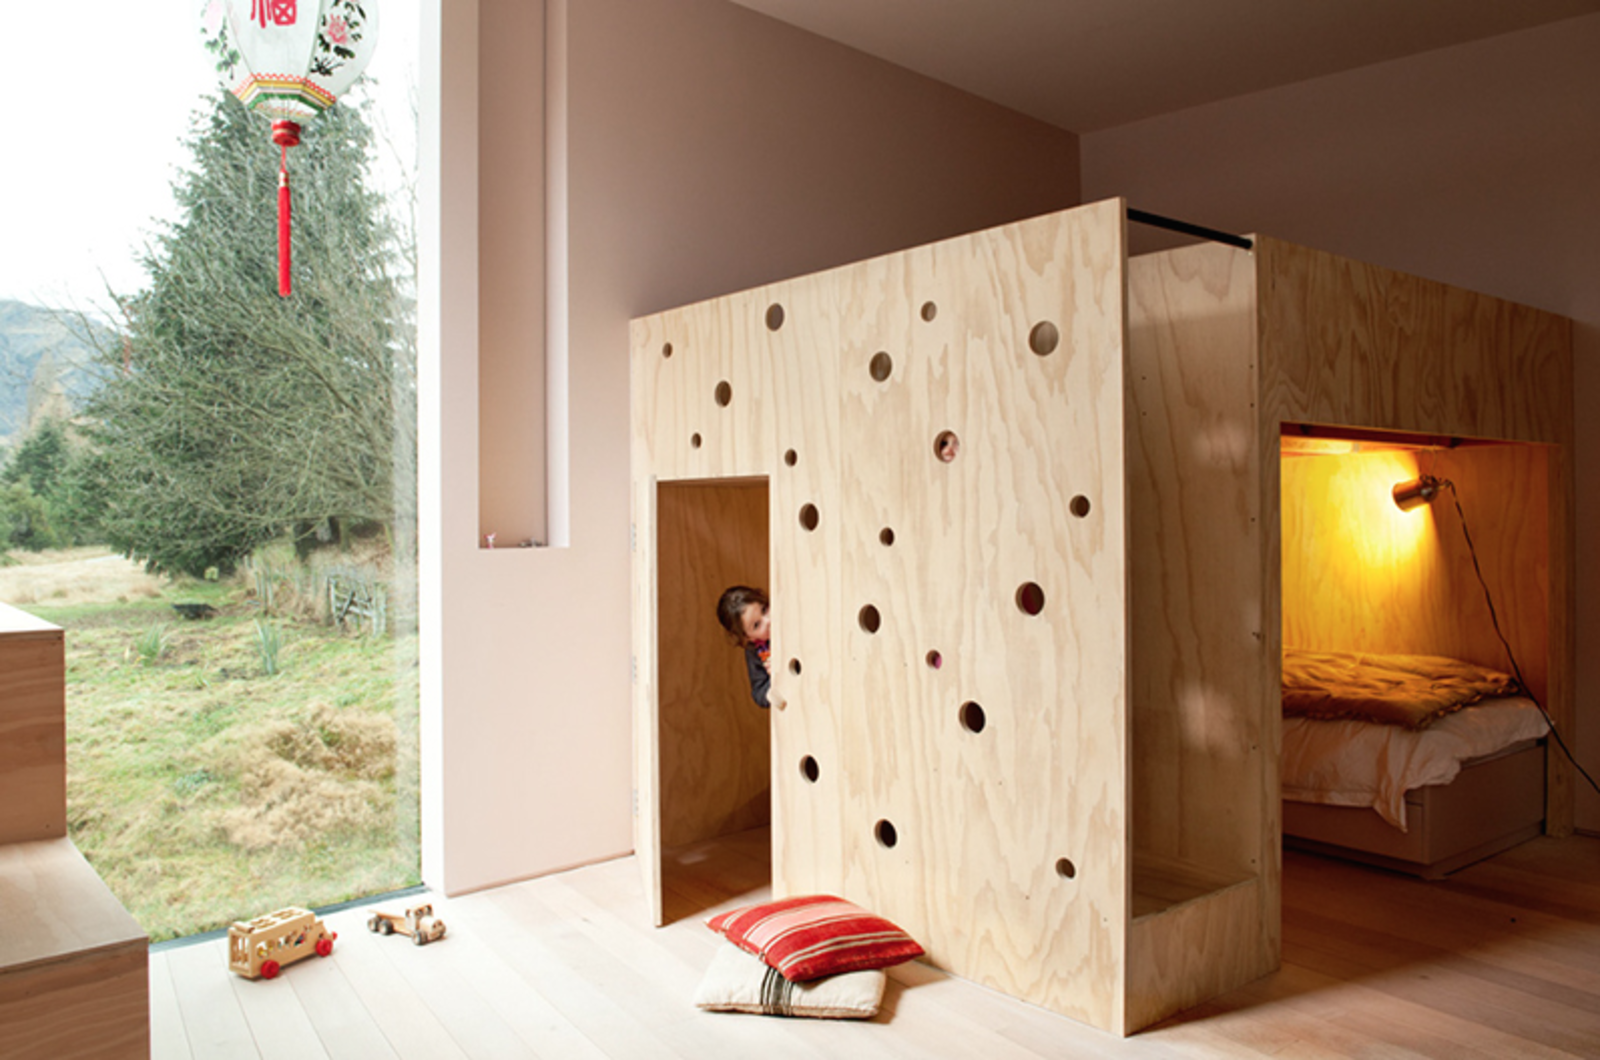 bunk-bed-and-playhouse-in-casa-familia-by-bergendy-cooke-new-zealand